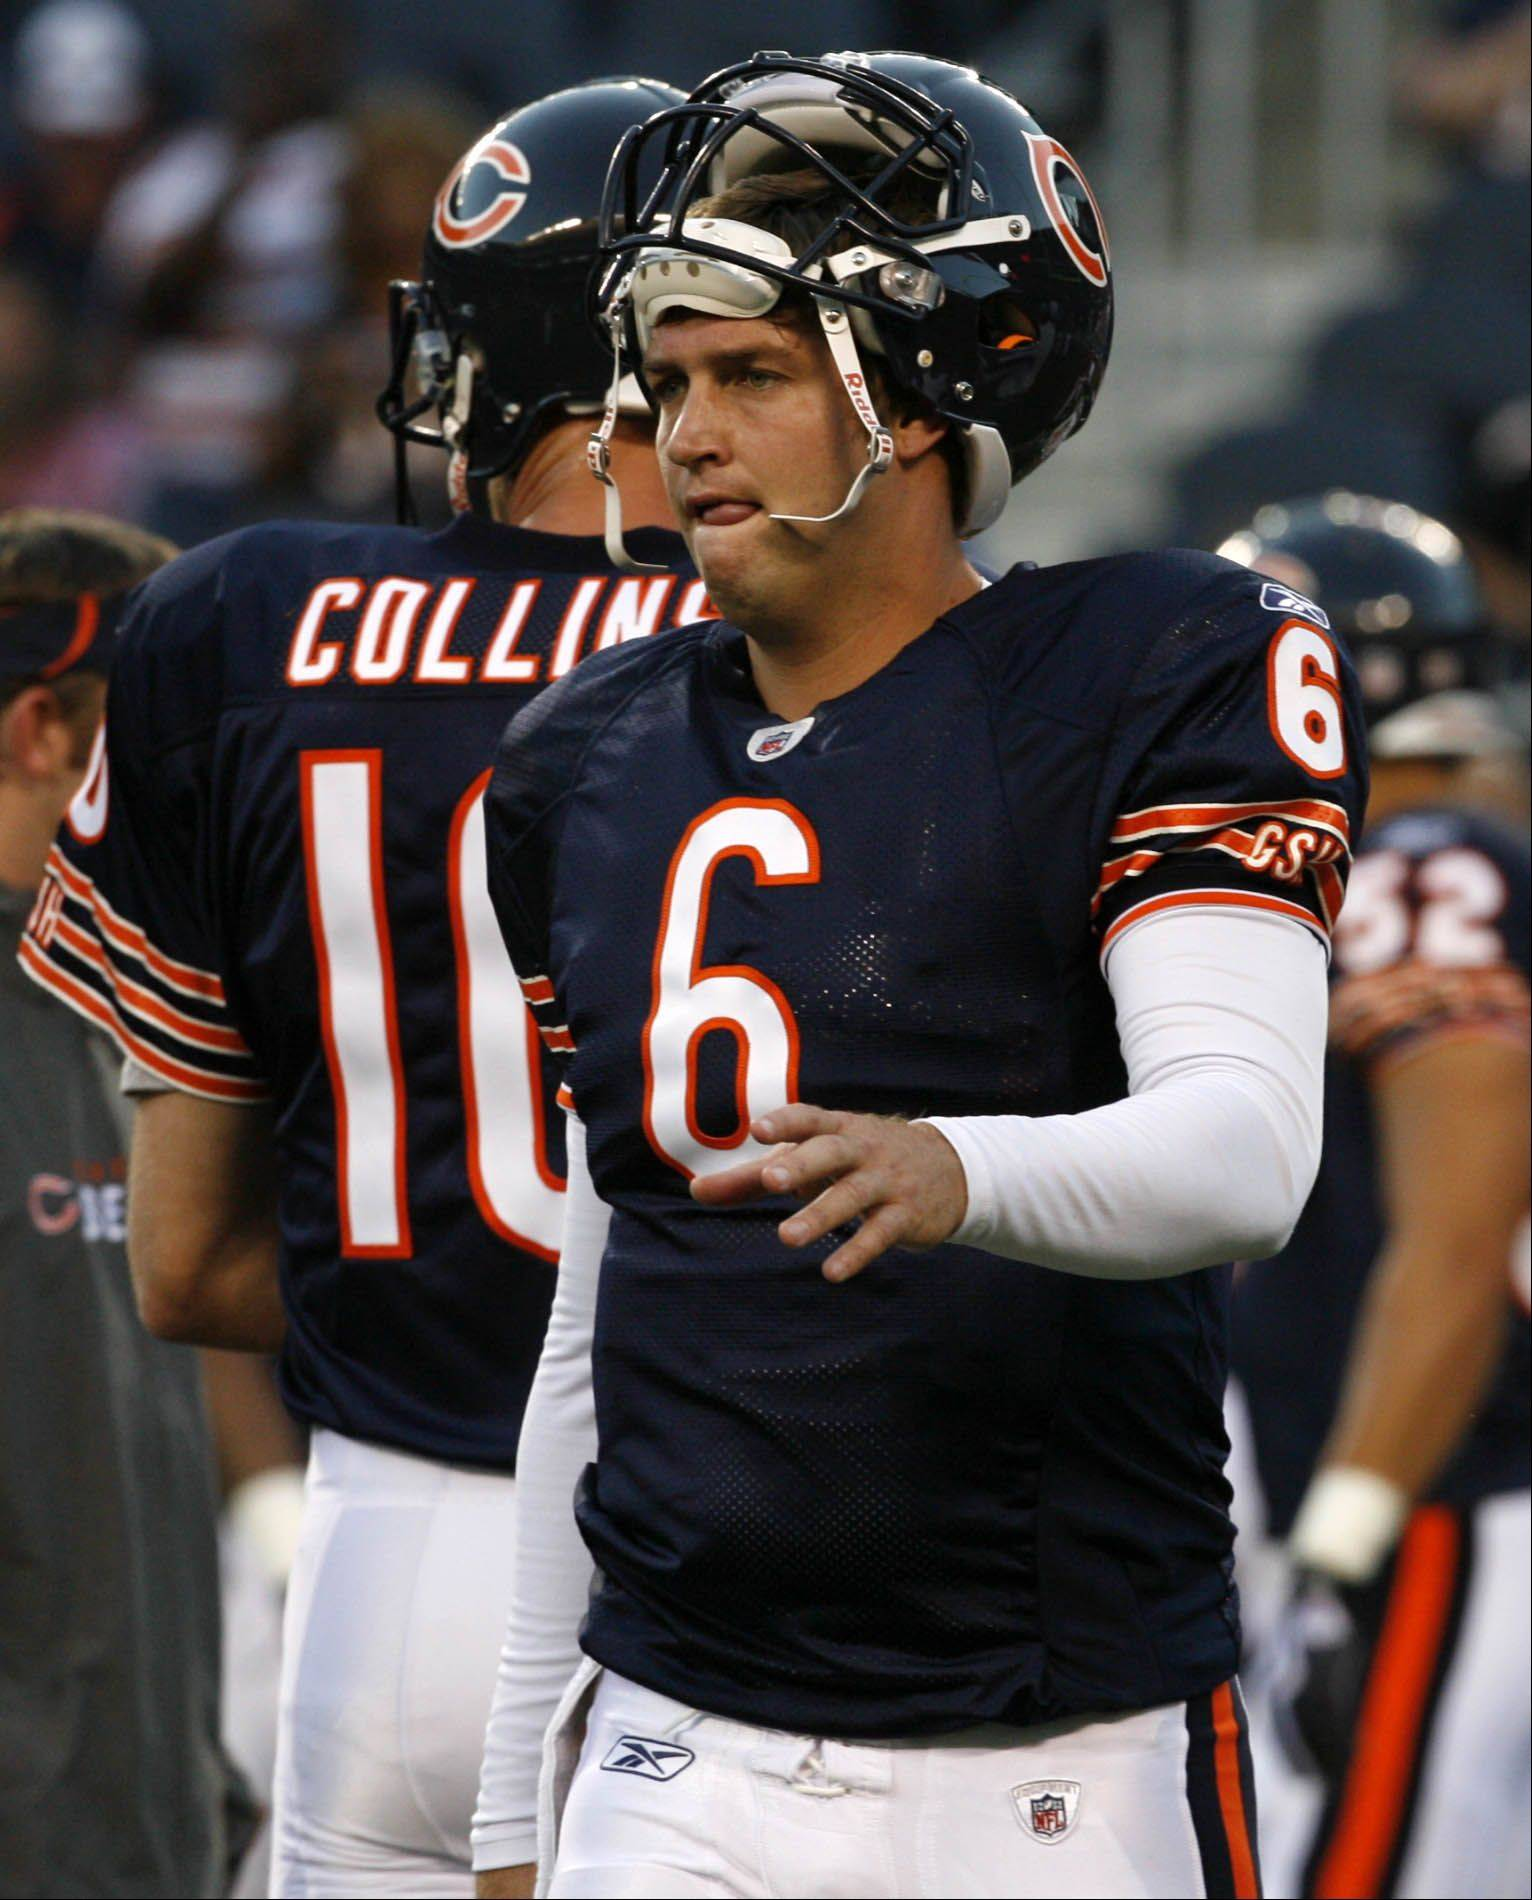 GEORGE LECLAIRE/gleclaire@dailyherald.com ¬ Chicago Bears' quarterbacks Jay Cutler and Todd Collins after warmups in game against Arizona Cardinals' on Saturday, August 28th at Soldier Field in Chicago.